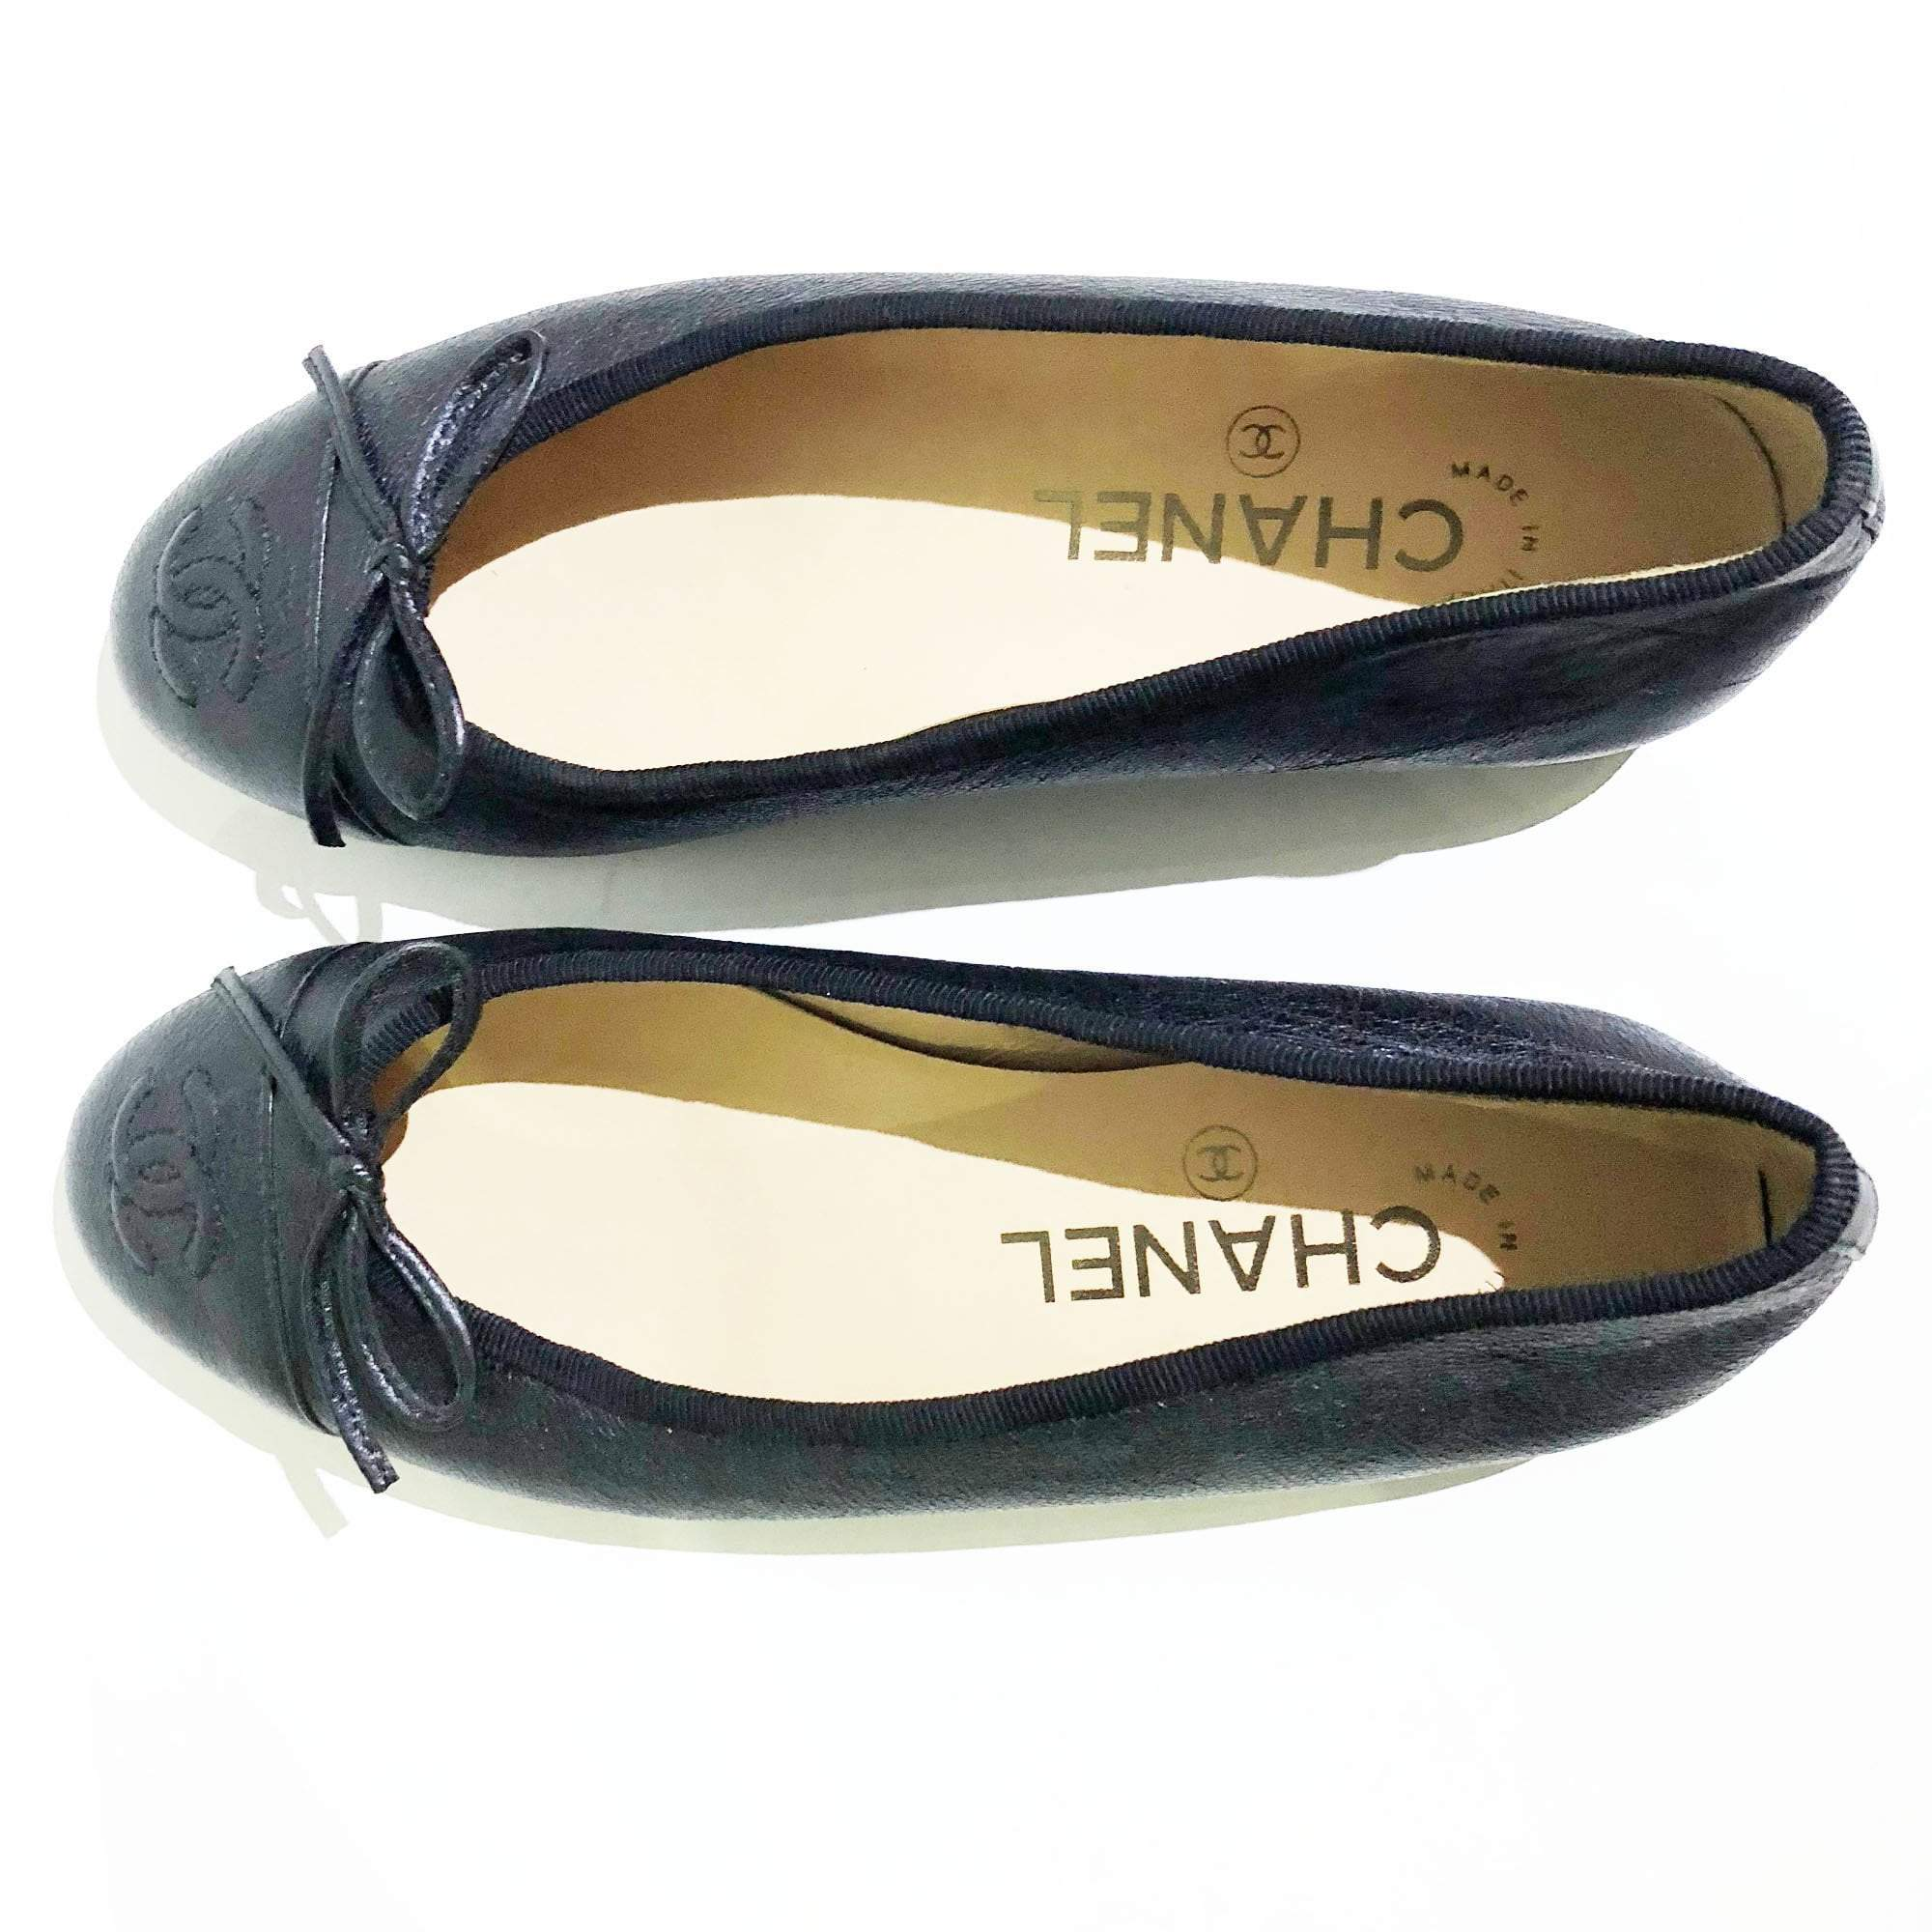 Chanel Ballerina in Black Textured Leather Size 34